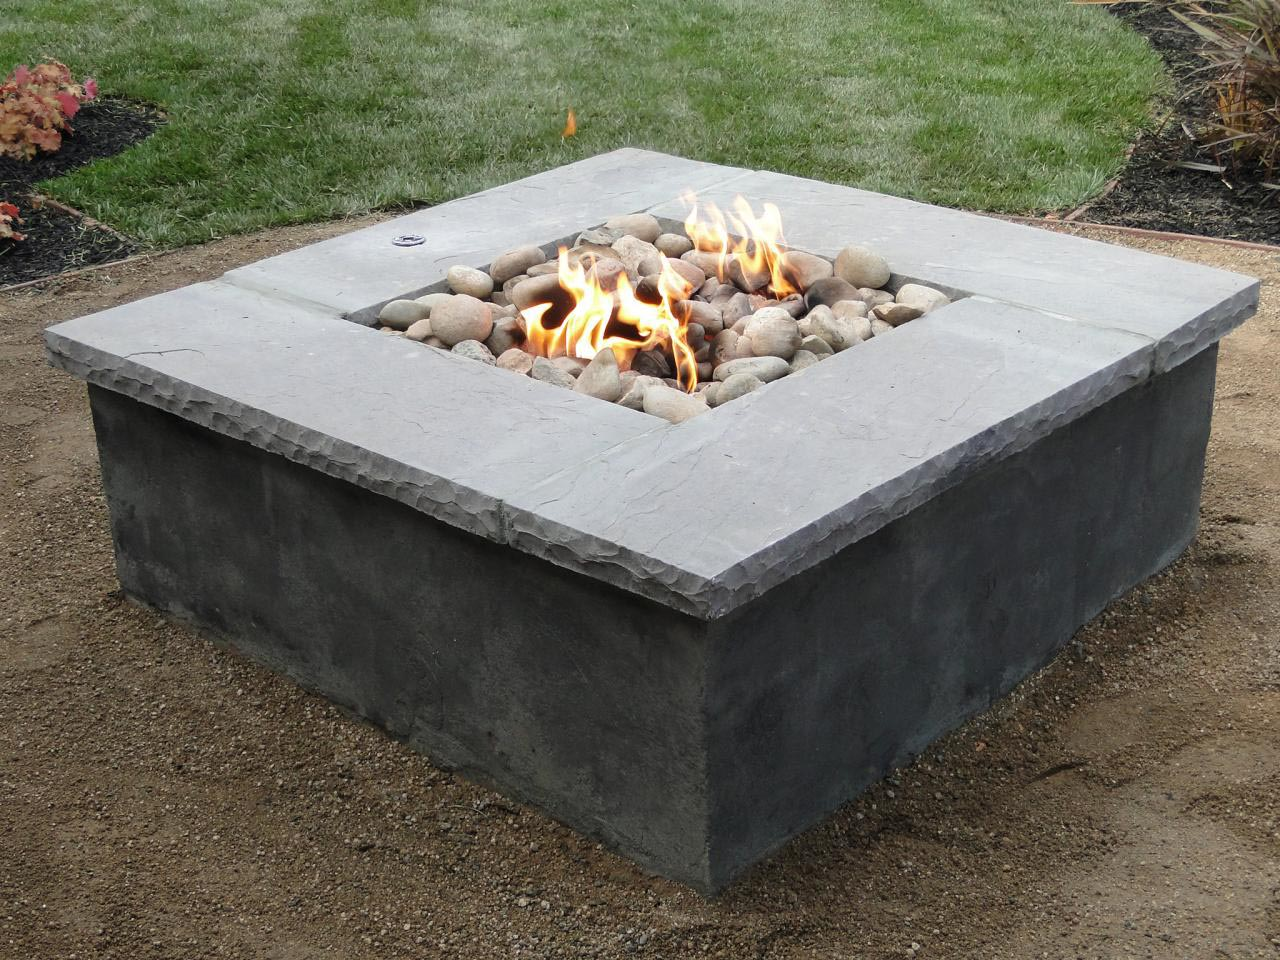 DIY Concrete Fire Pit Tutorial